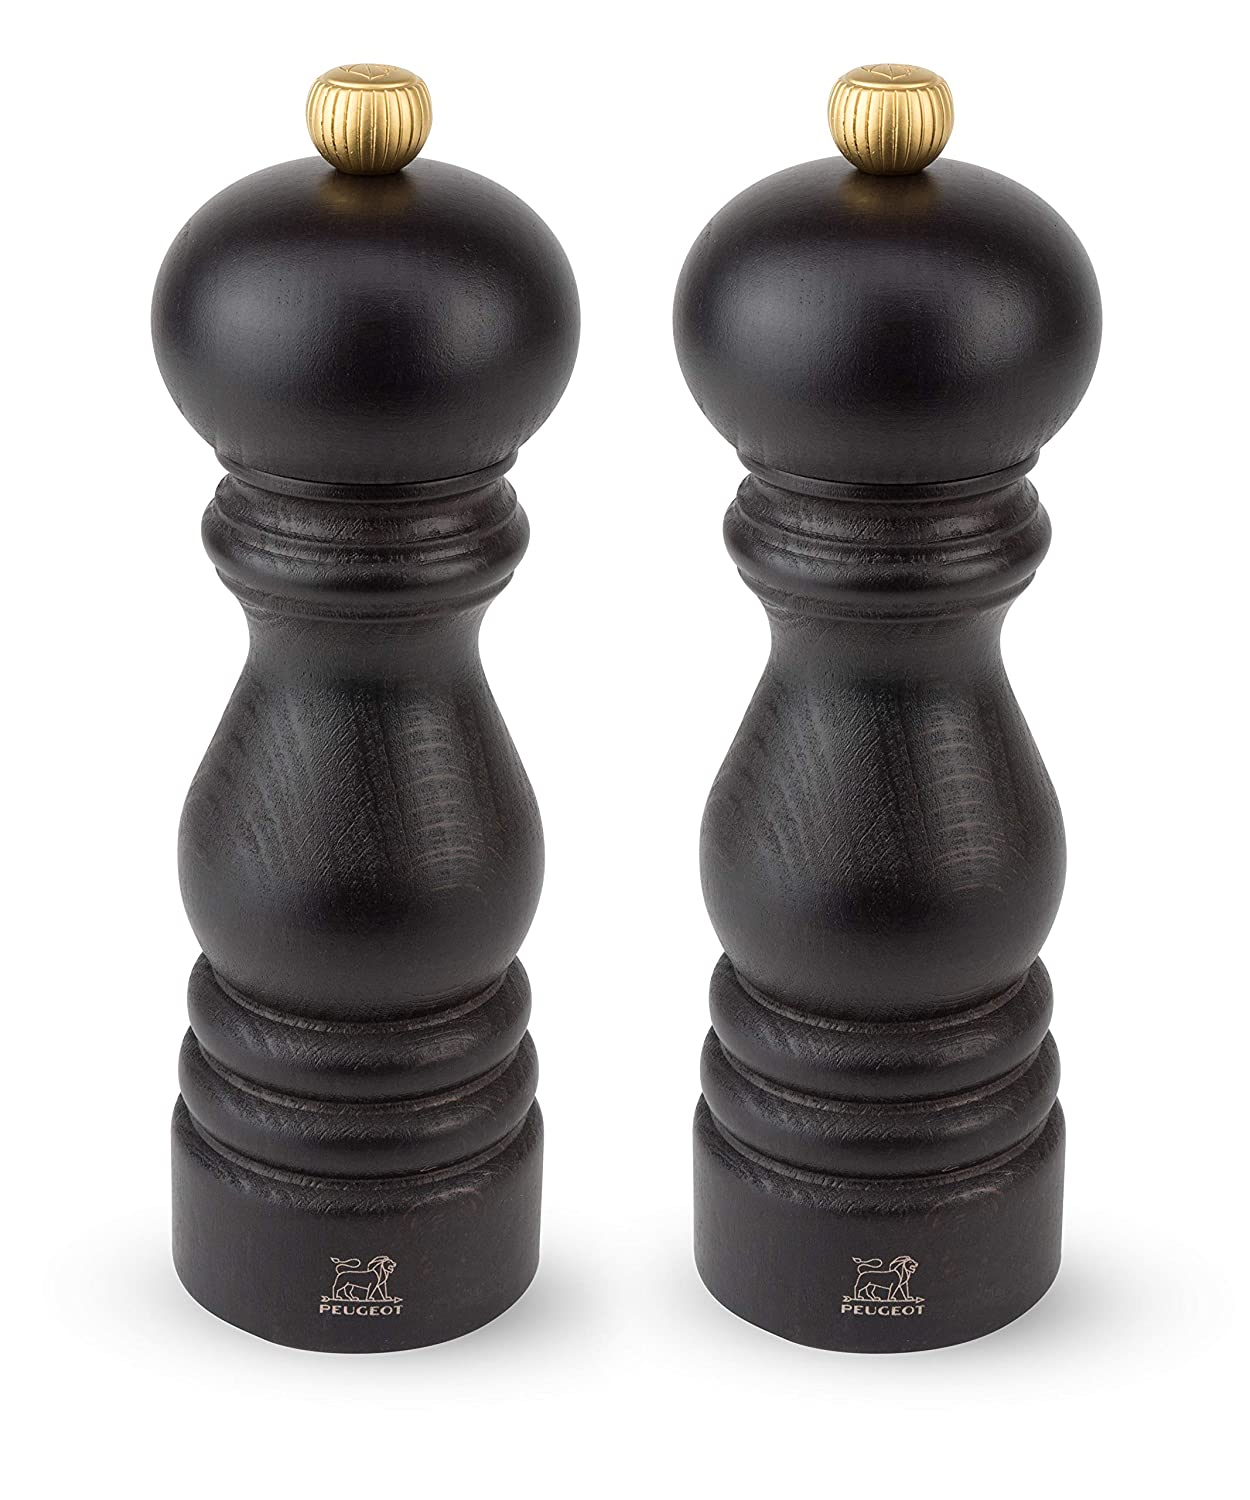 Peugeot 2/23386 Paris u'Select Pepper Mill and Salt Mill Set 7 Inch (Natural)